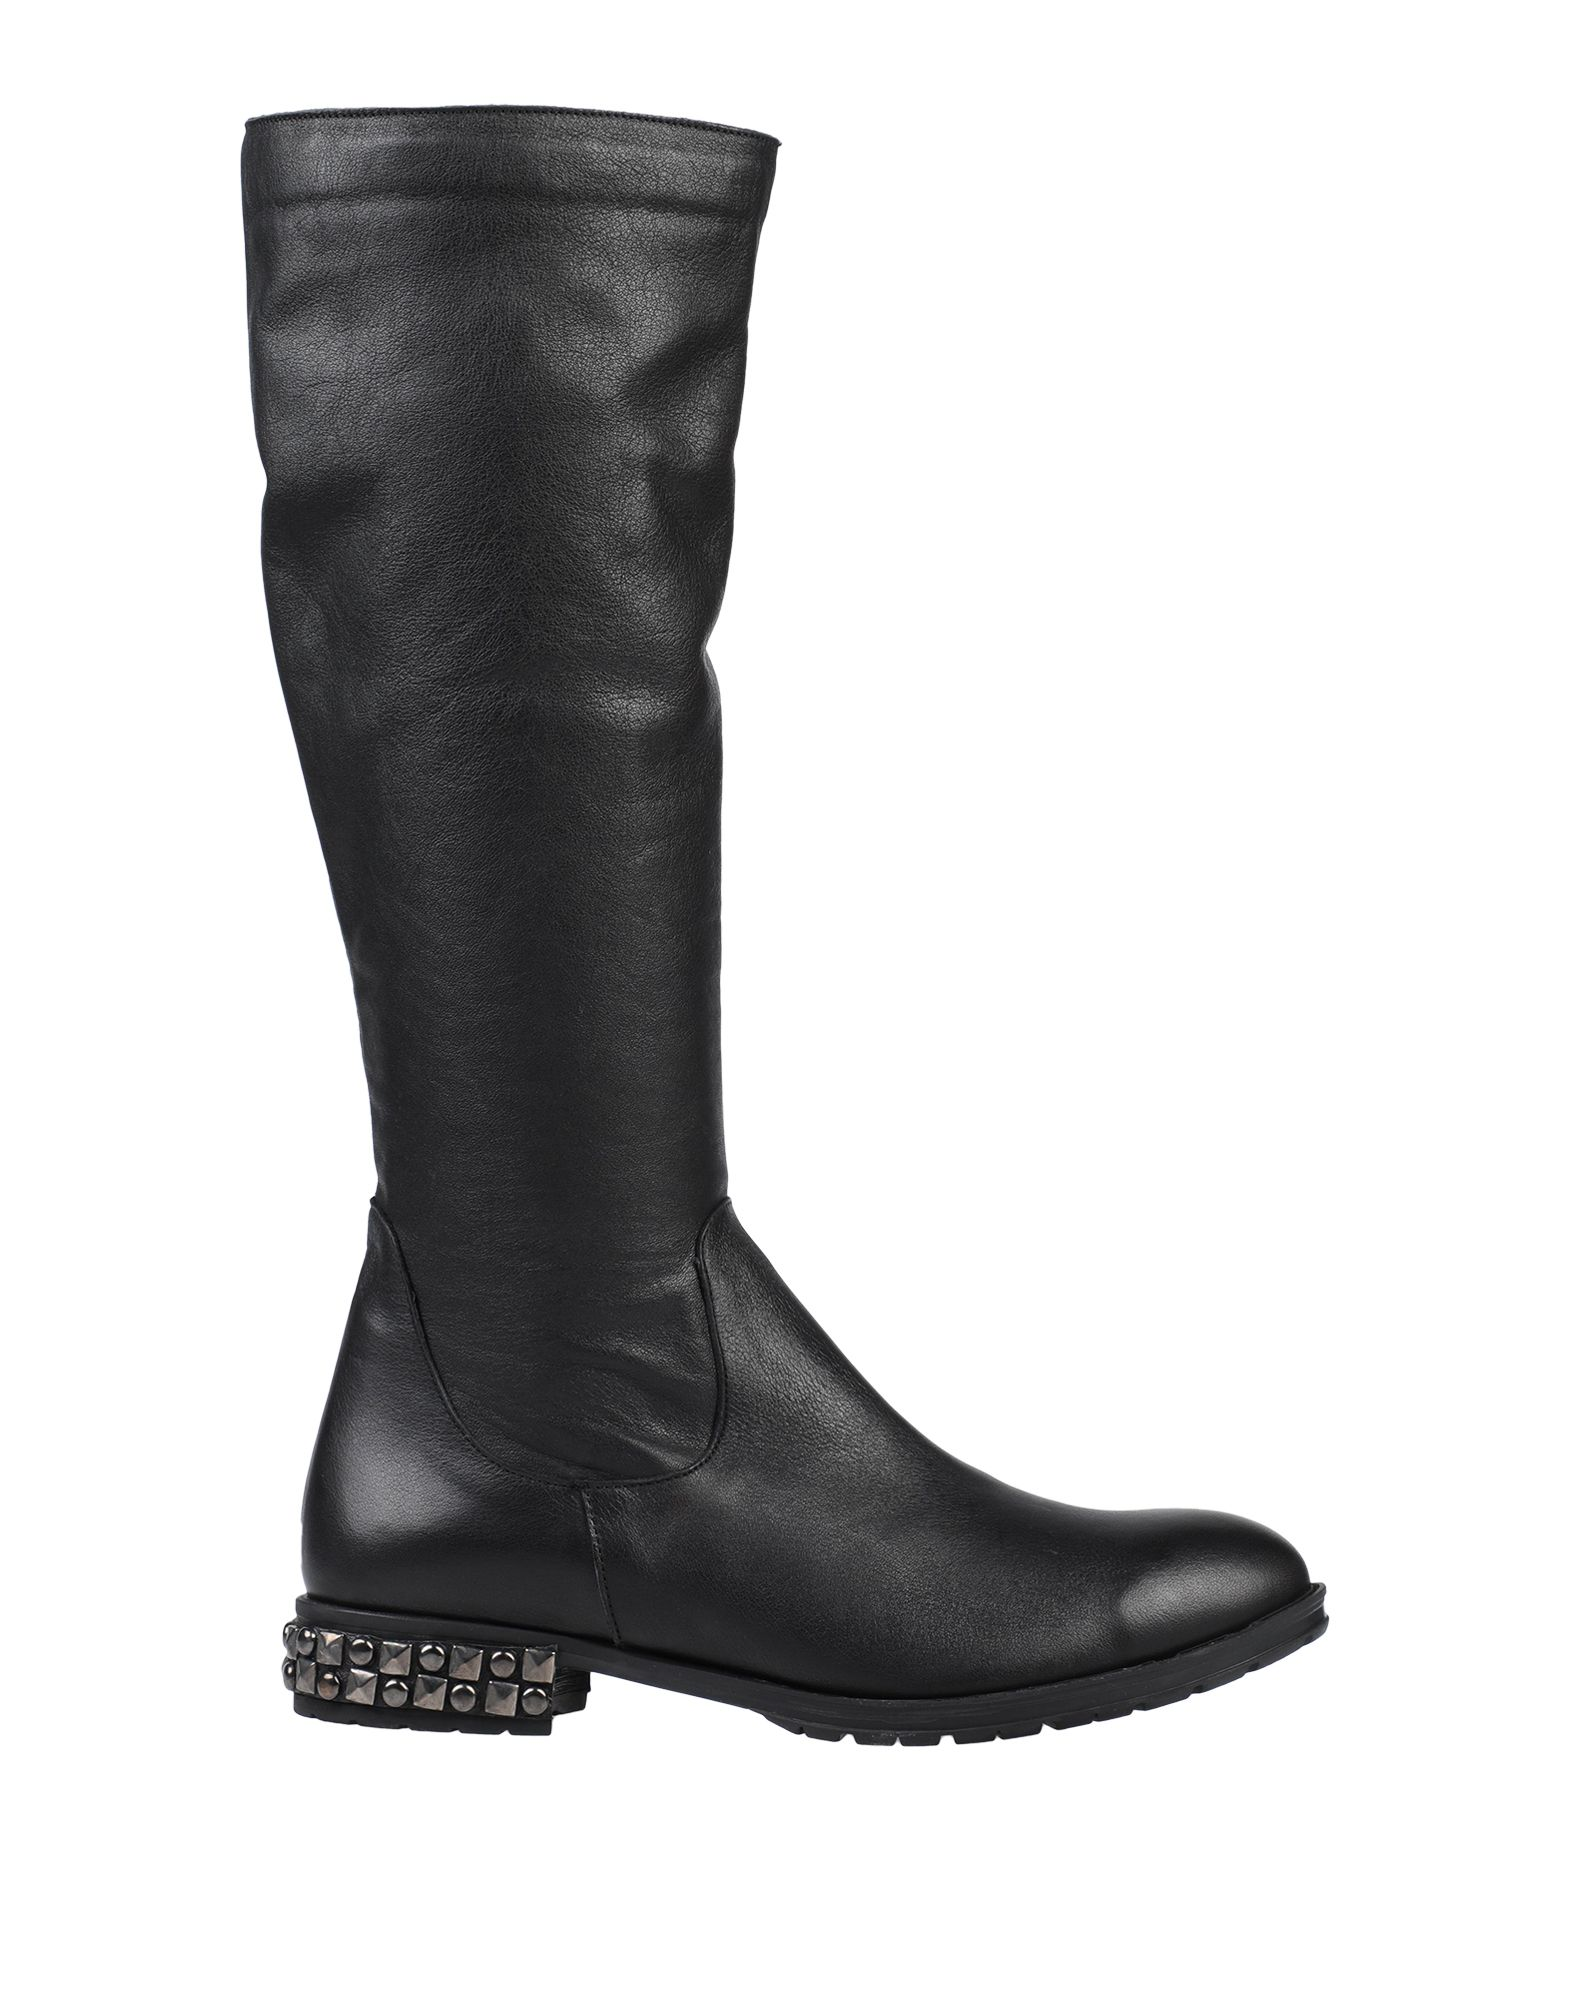 BUENO Boots. leather, studs, solid color, zipper closure, round toeline, square heel, leather lining, rubber cleated sole, contains non-textile parts of animal origin. Soft Leather